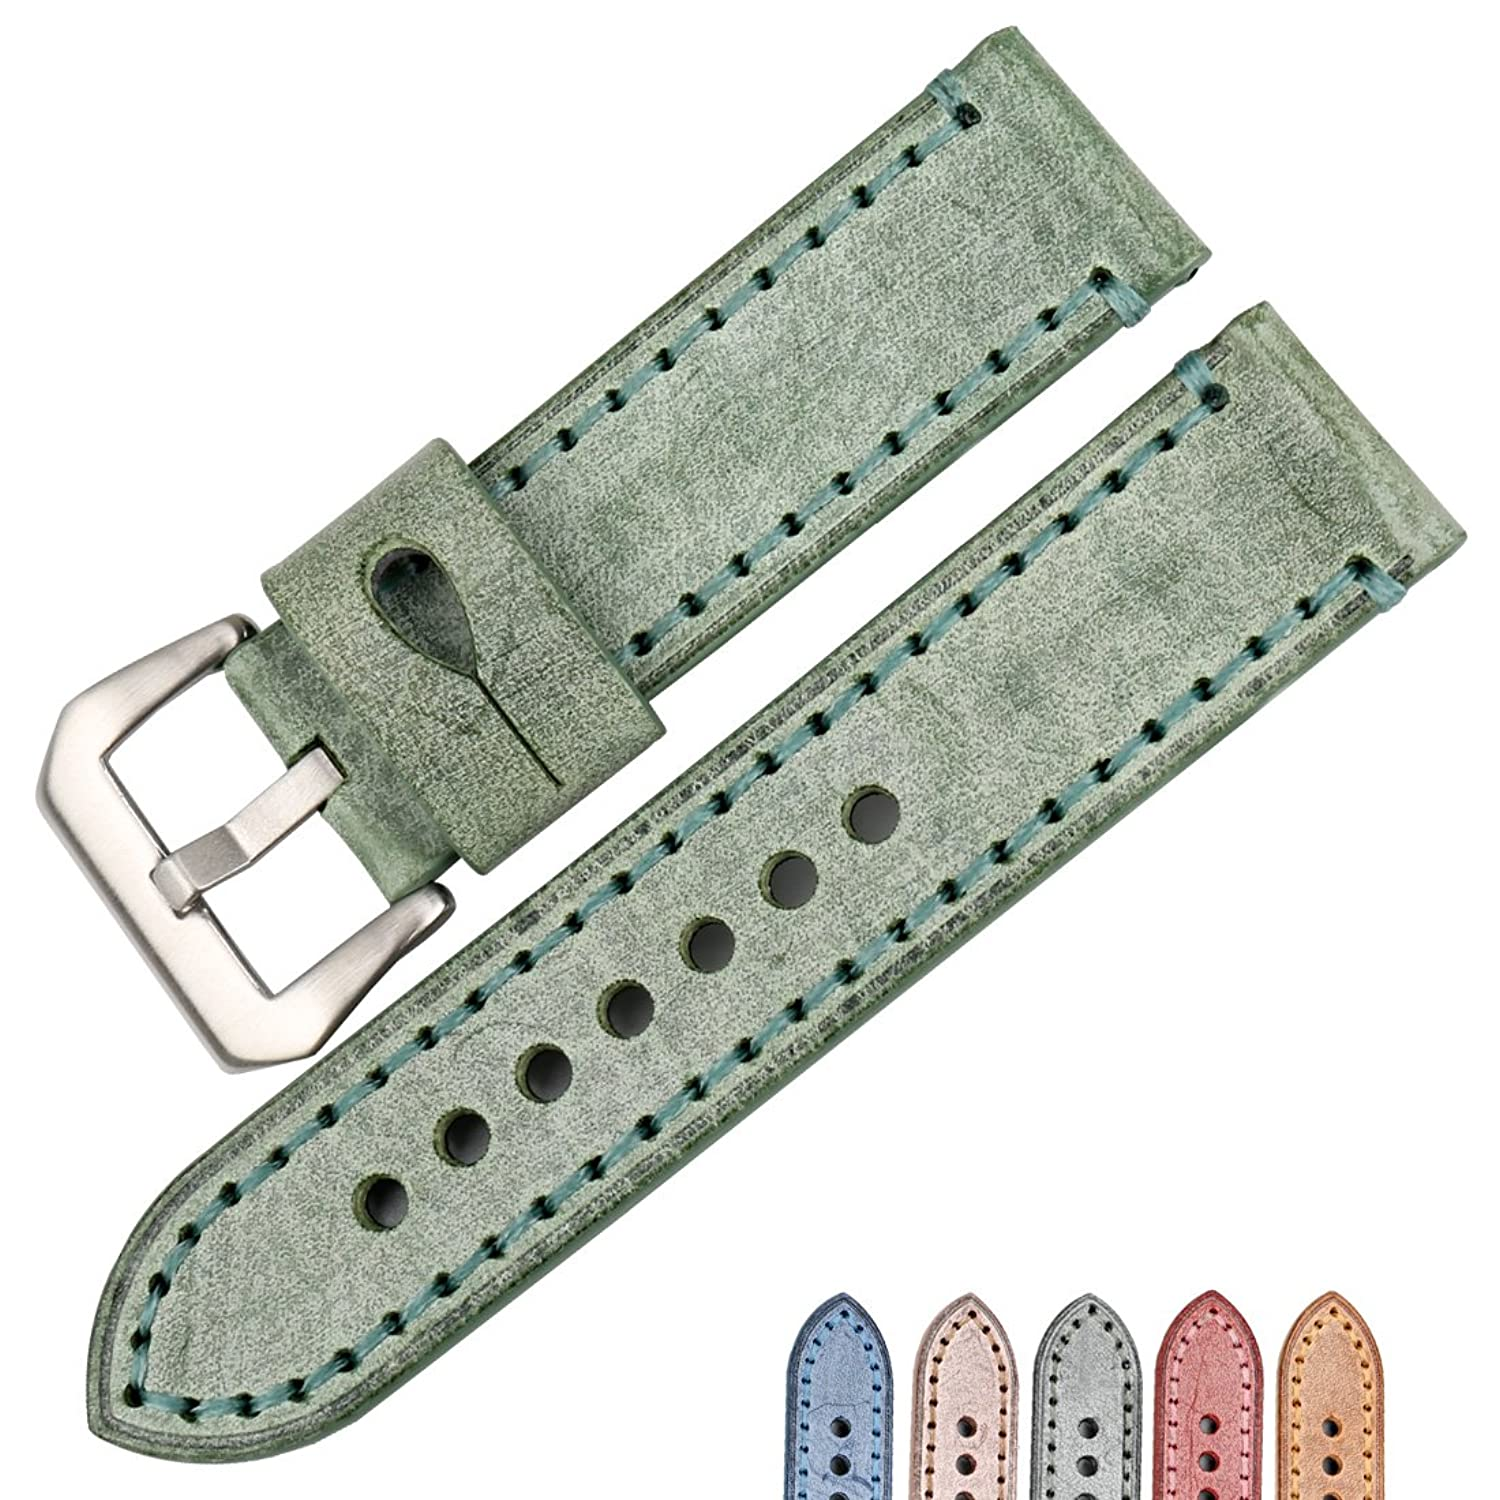 maikes Watchアクセサリー22 24 mmバンド英語Bridle Cow Leather Watch Band for Panerai腕時計ストラップ 22mm Green+Silver Buckle  Green+Silver Buckle 22mm B075ZQF83B